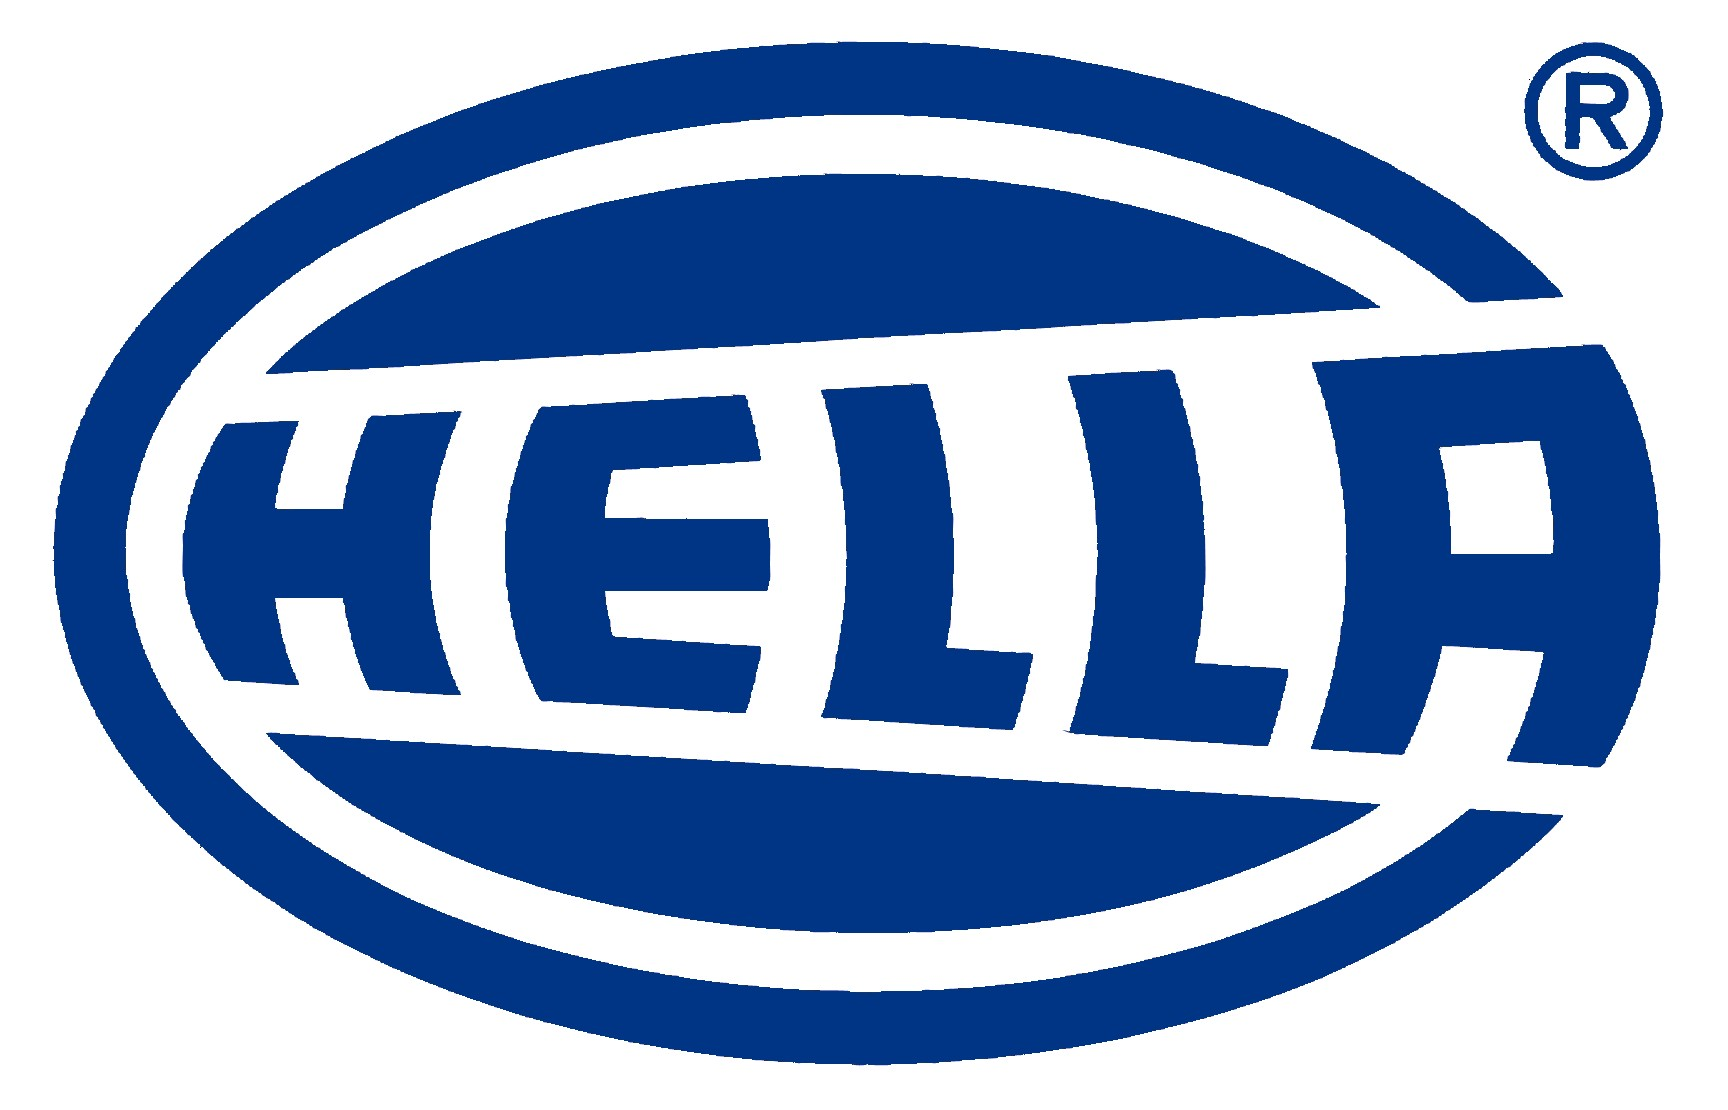 hella-blue-white-logo-high-resolutionjpg